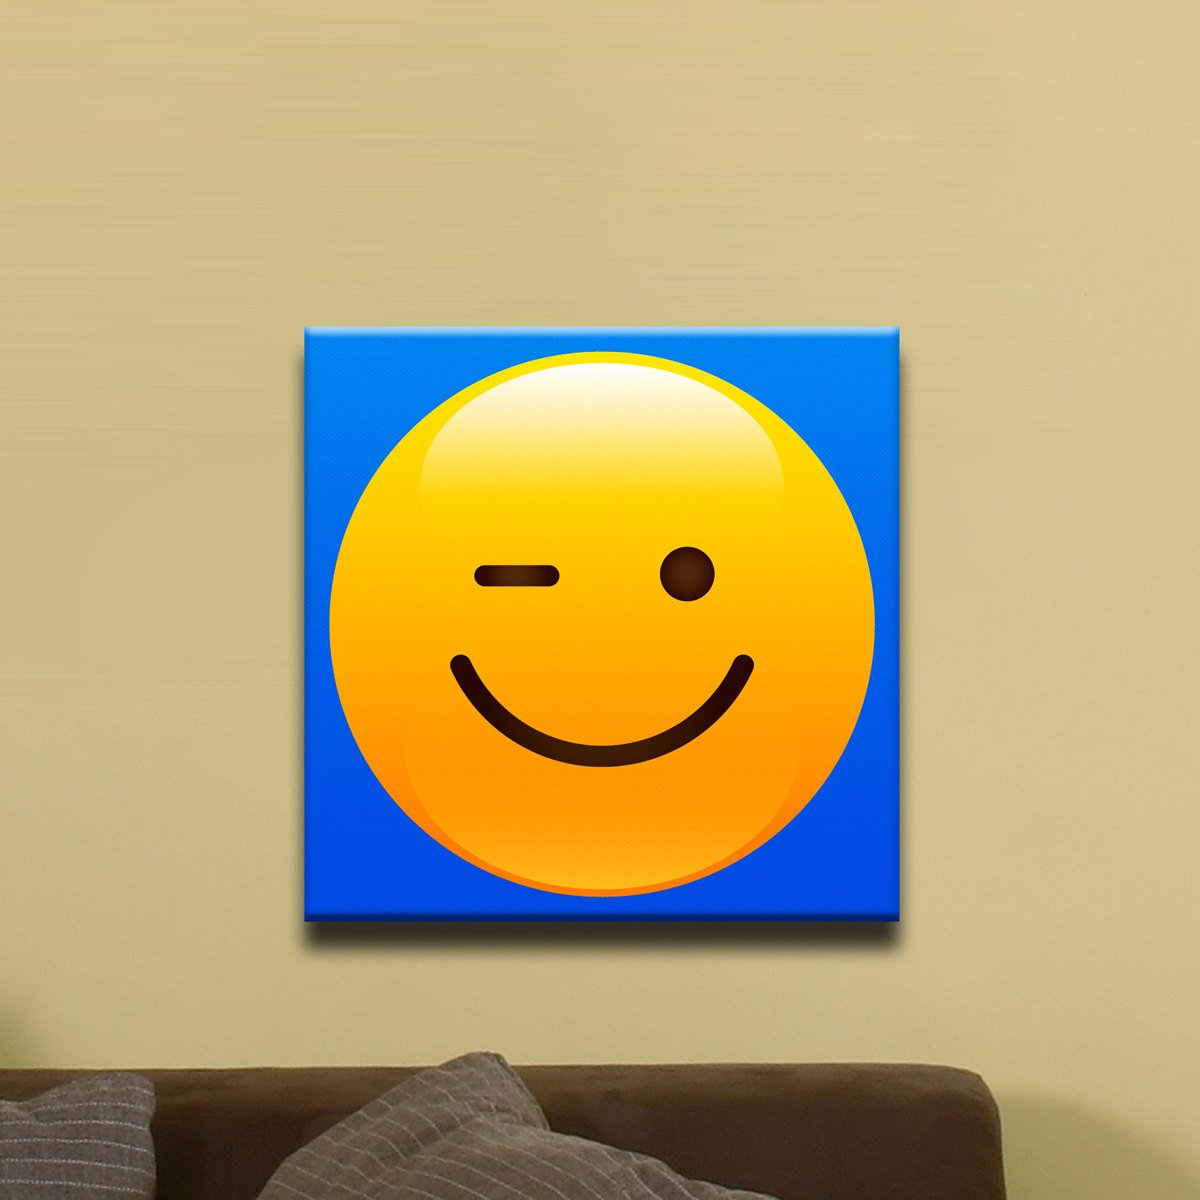 Wink, Winking Smiley Face Emoji (12″ x 12″) – Canvas Wrap Print